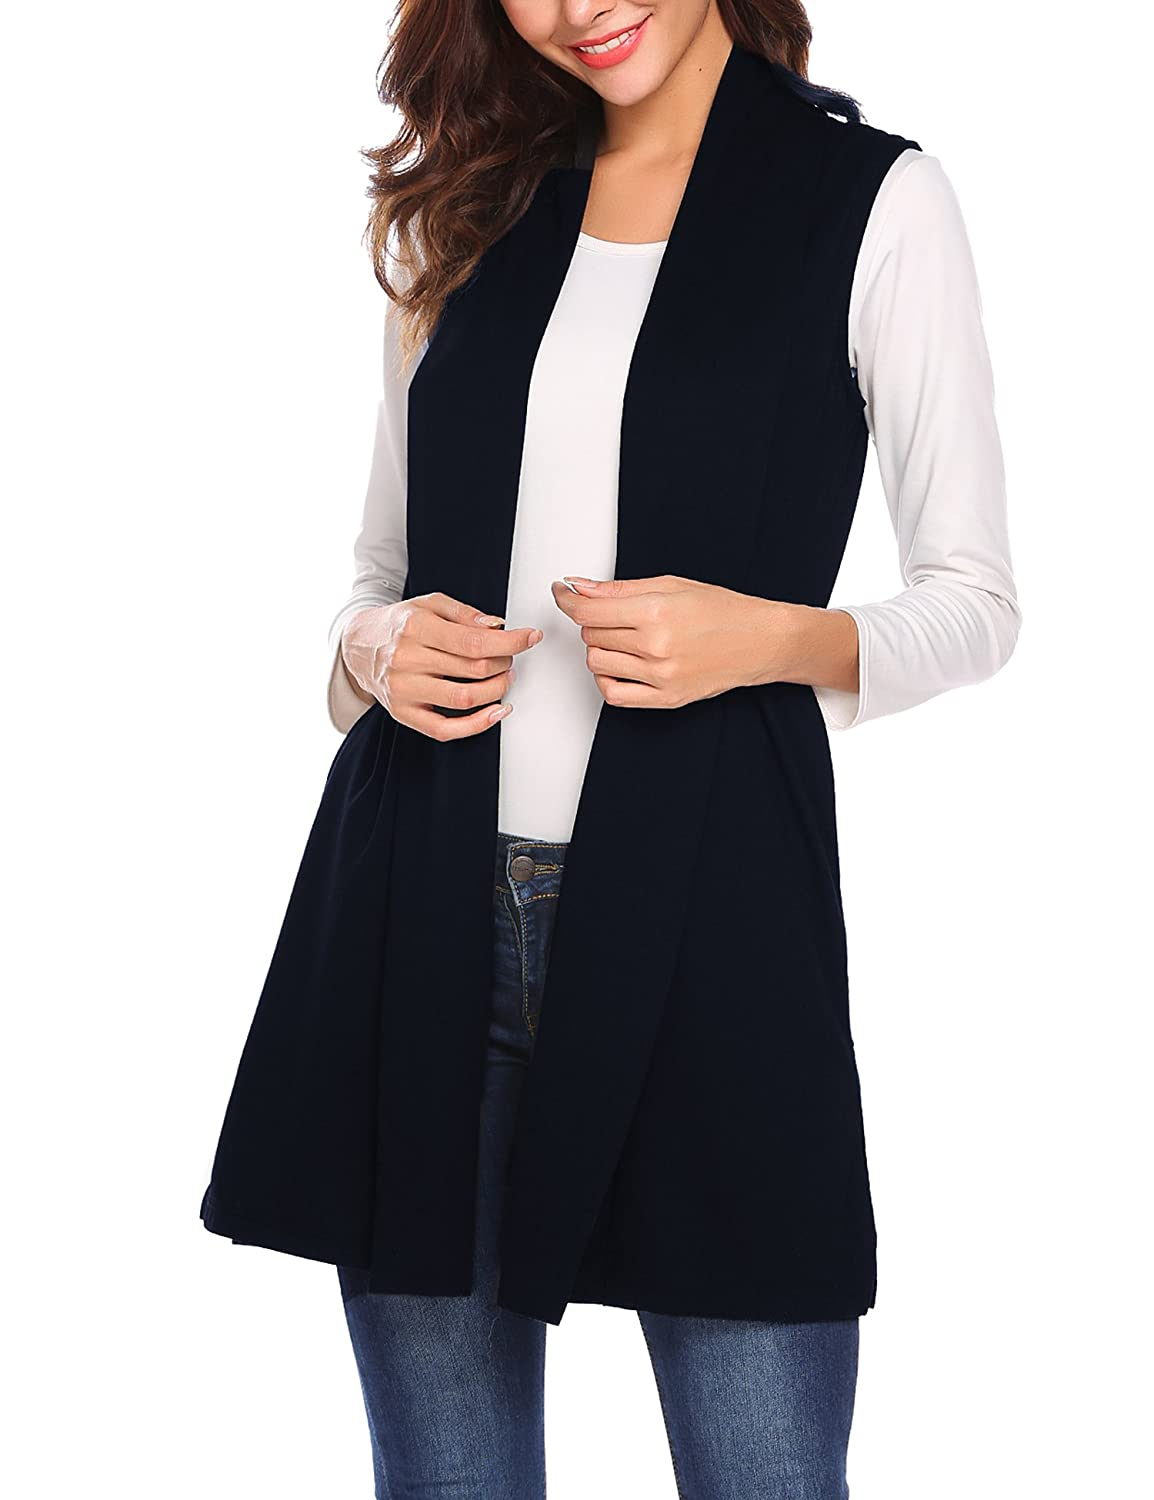 1920s Style Blouses, Shirts, Sweaters, Cardigans Beyove Womens Long Vests Sleeveless Draped Lightweight Open Front Cardigan Layering Vest with Side Pockets (S-XXL) $26.99 AT vintagedancer.com